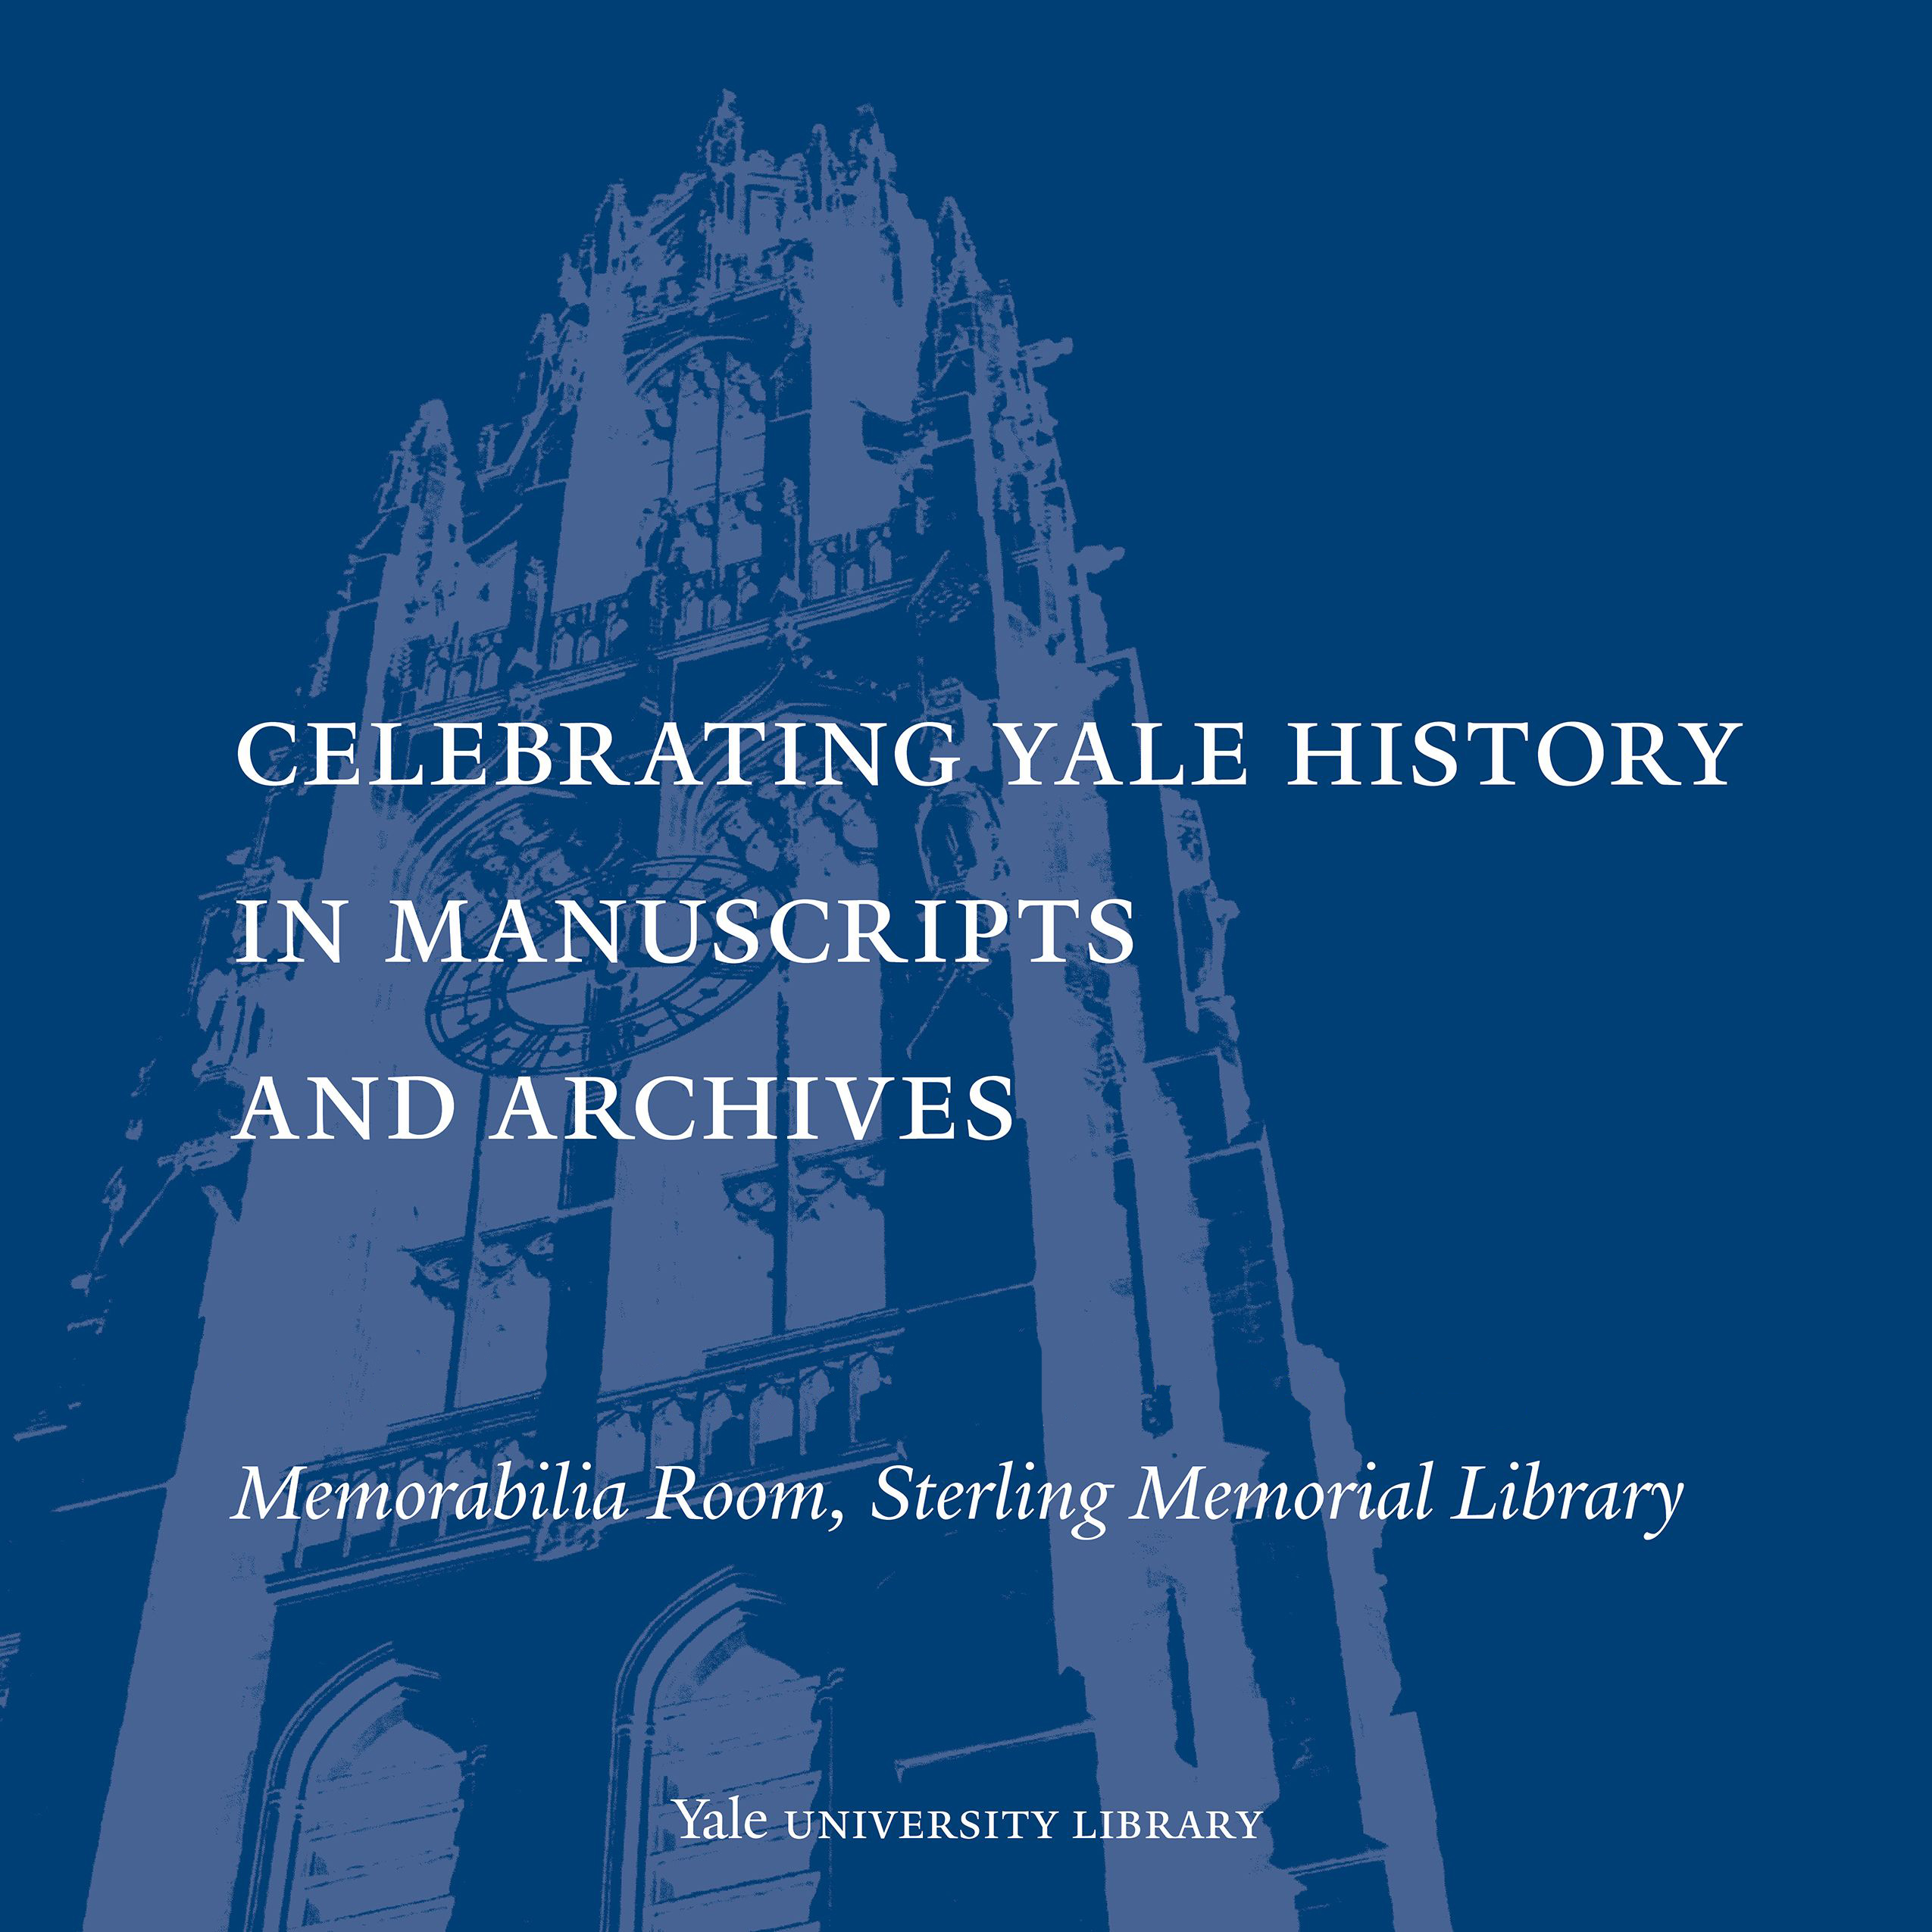 Celebrating Yale History in Manuscripts and Archives promotional image